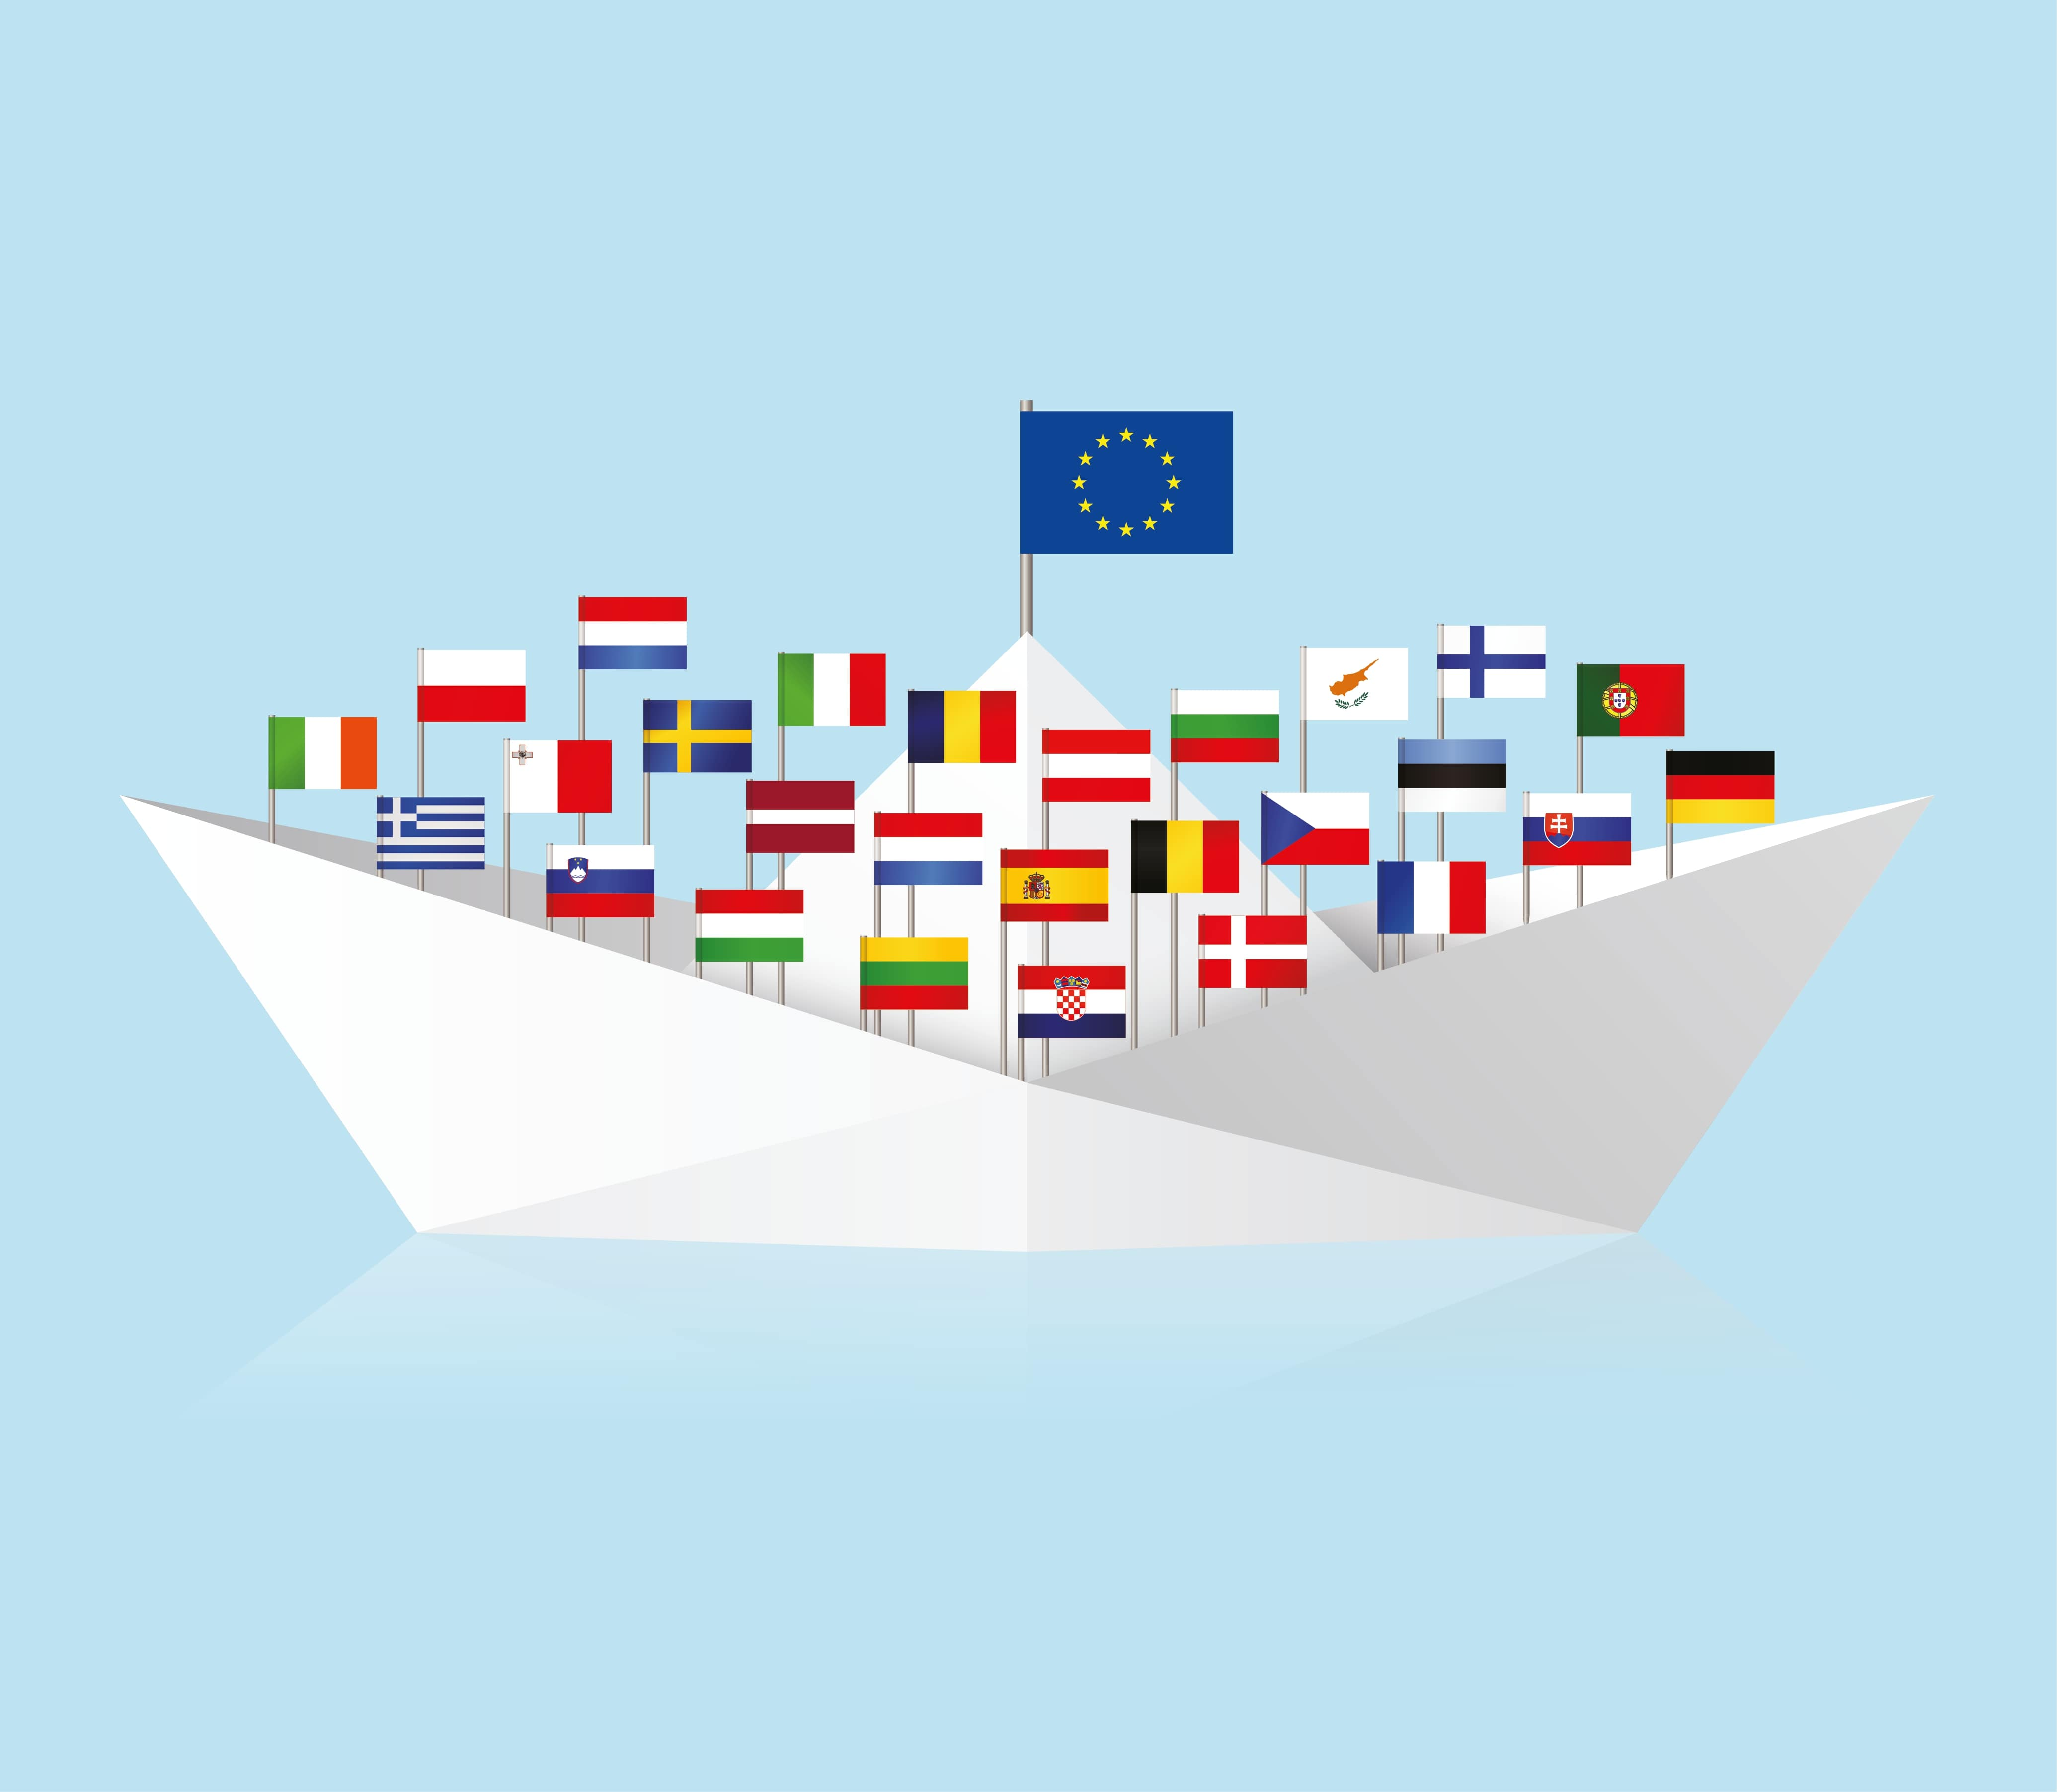 Shared EU issues/competences